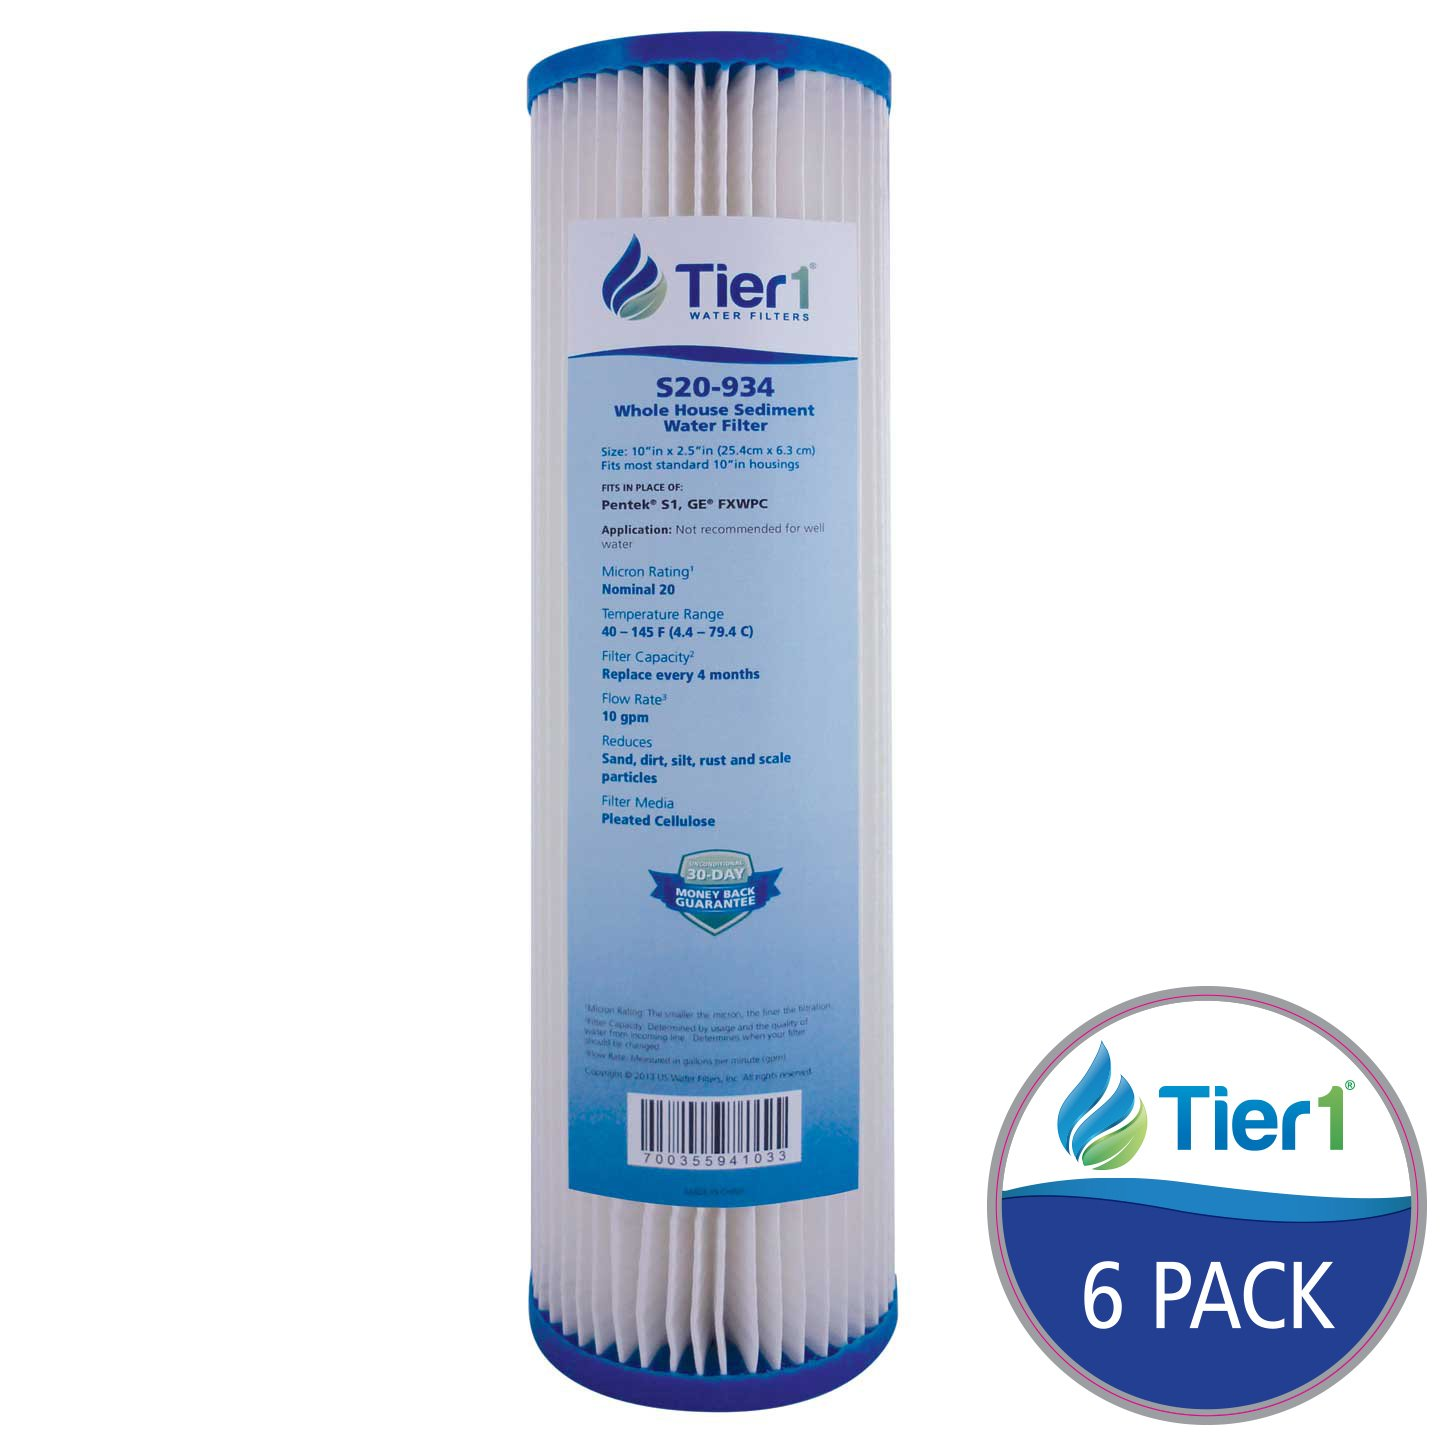 Tier1 Replacement for Pentek S1 20 Micron 10 x 2.5 Pleated Cellulose Sediment Water Filter 6 Pack - Not for Well Water